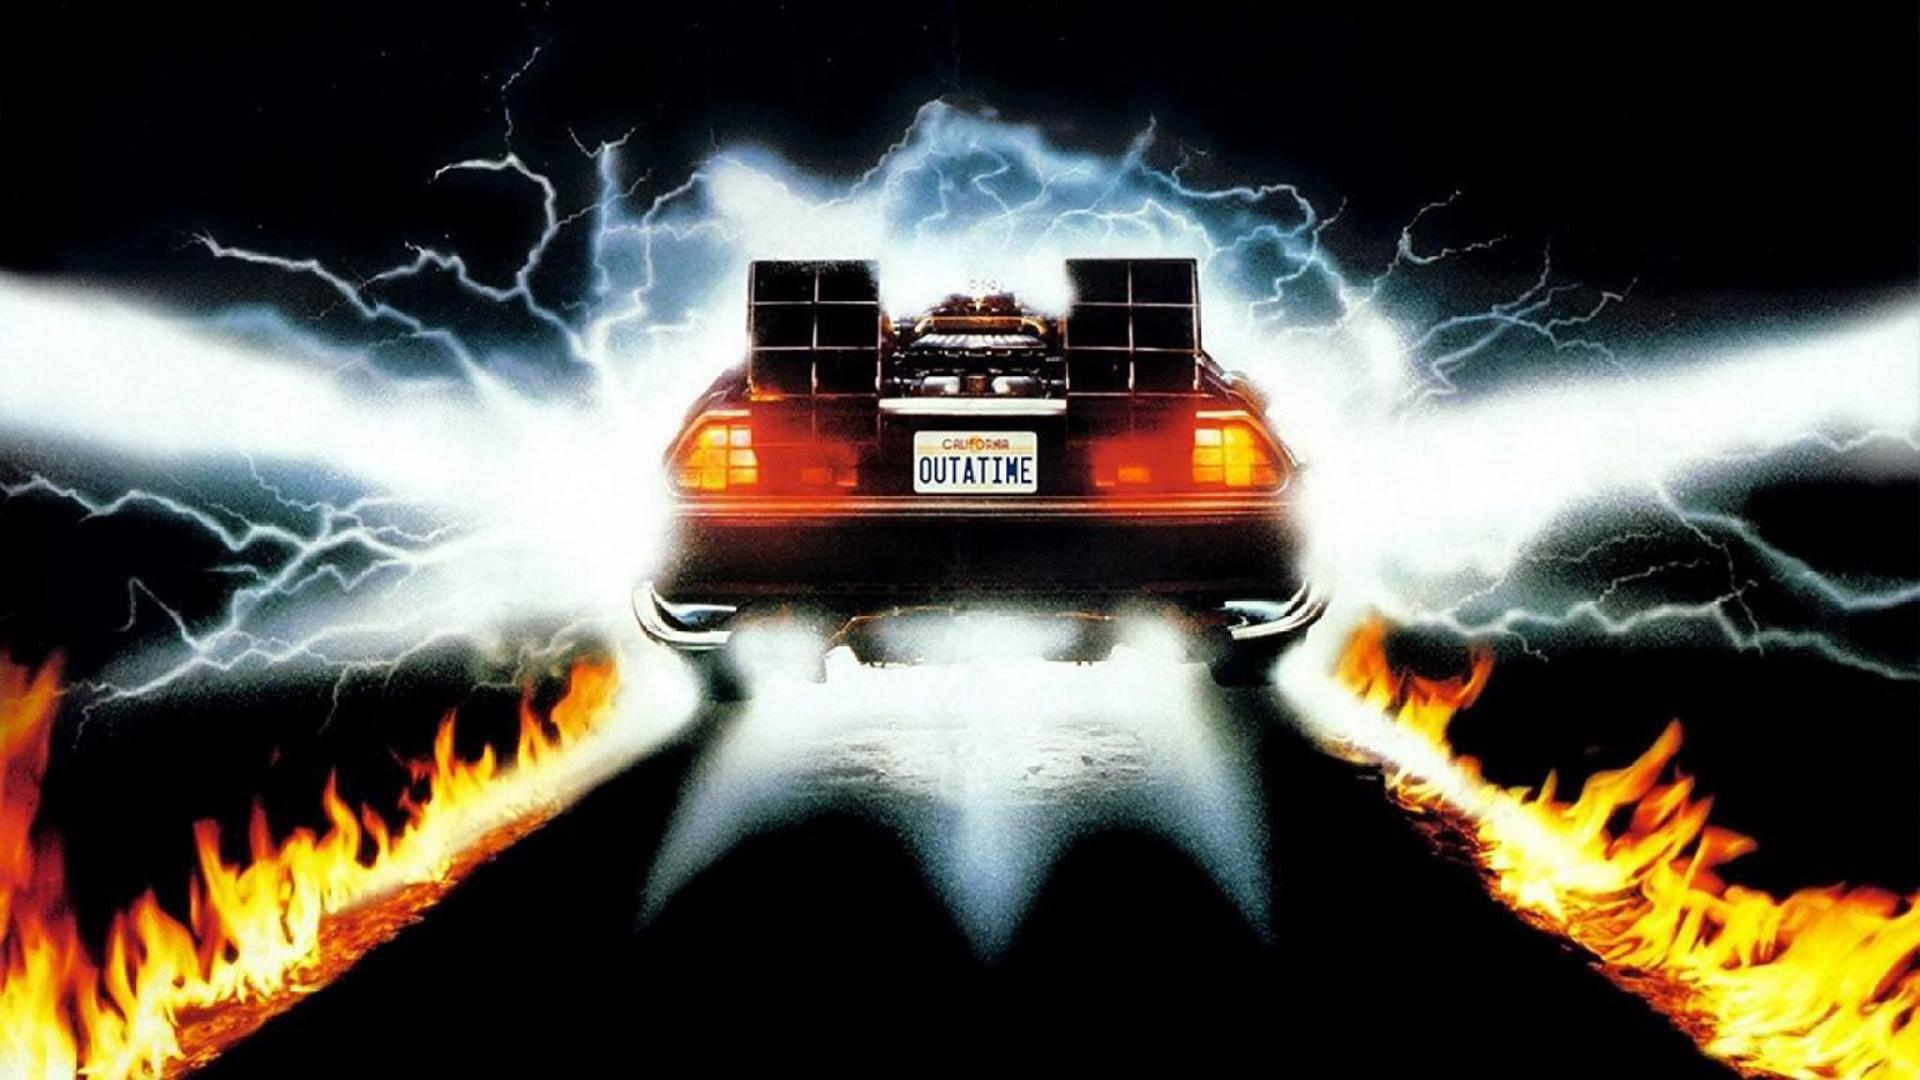 Utekino: Back to the Future